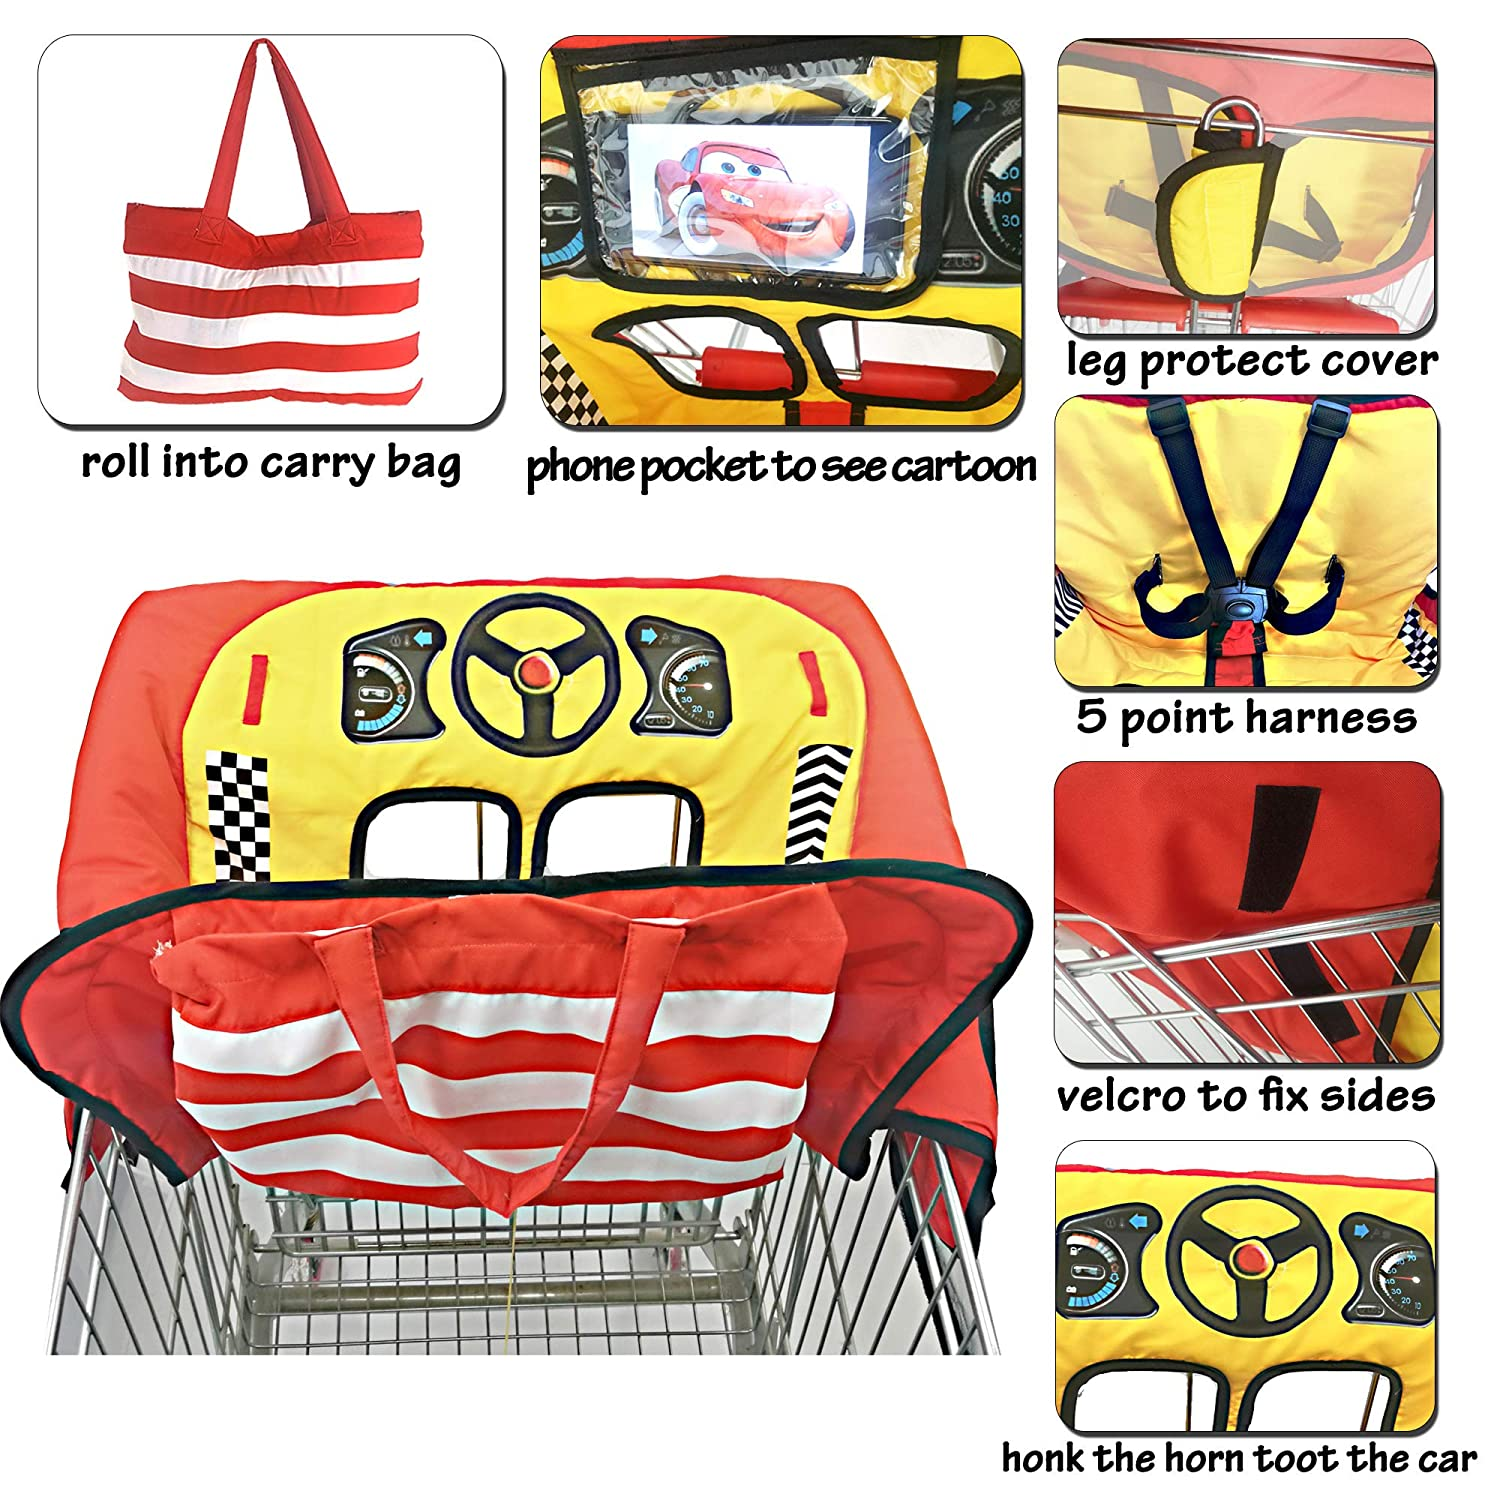 Cute Car Design 2-in-1 Shopping Cart /& High Chair Cover for Baby with Portable Bag Universal Red 5 Point Safety Harness System Universal Fit All Shopping Cart Seat/& Restaurant Highchair